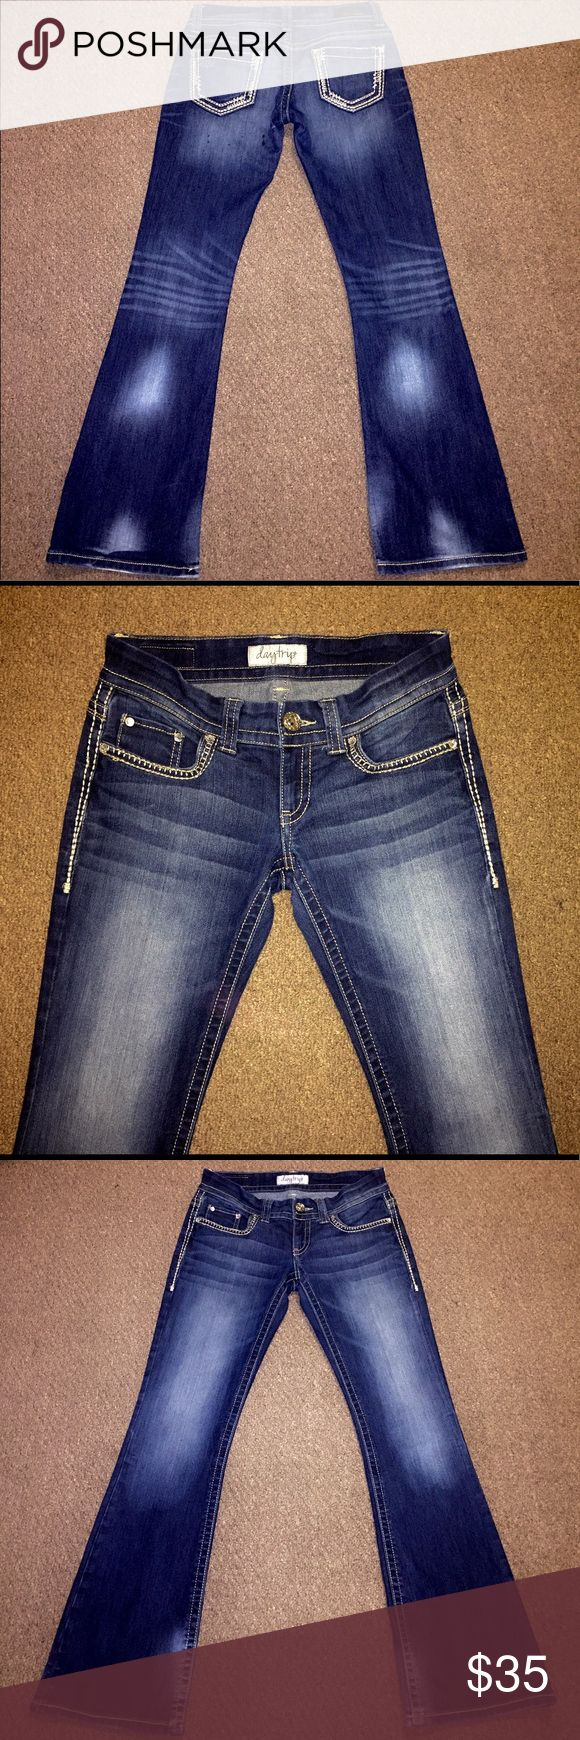 😍 Gorgeous Daytrip Aquarius Flare Jeans 😍 Gorgeous and in perfect condition! From the Buckle store- Daytrip Aquarius Flare Women's Dark Wash Jeans in size 28 R with an inseam of 33. BKE Jeans Flare & Wide Leg